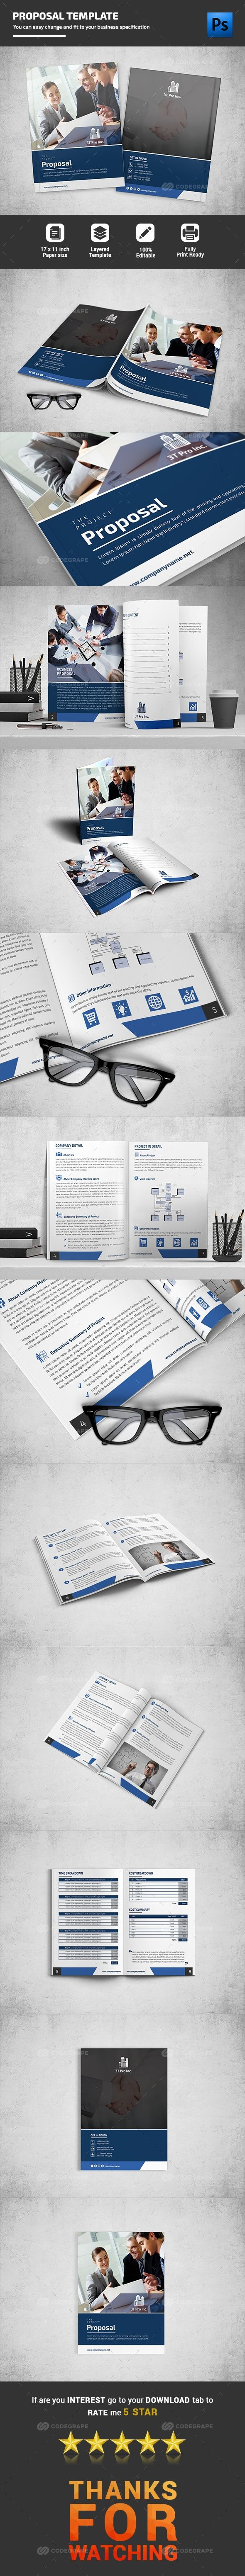 proposal report template%0A Proposal Template on  codegrape  More Info  https   www codegrape